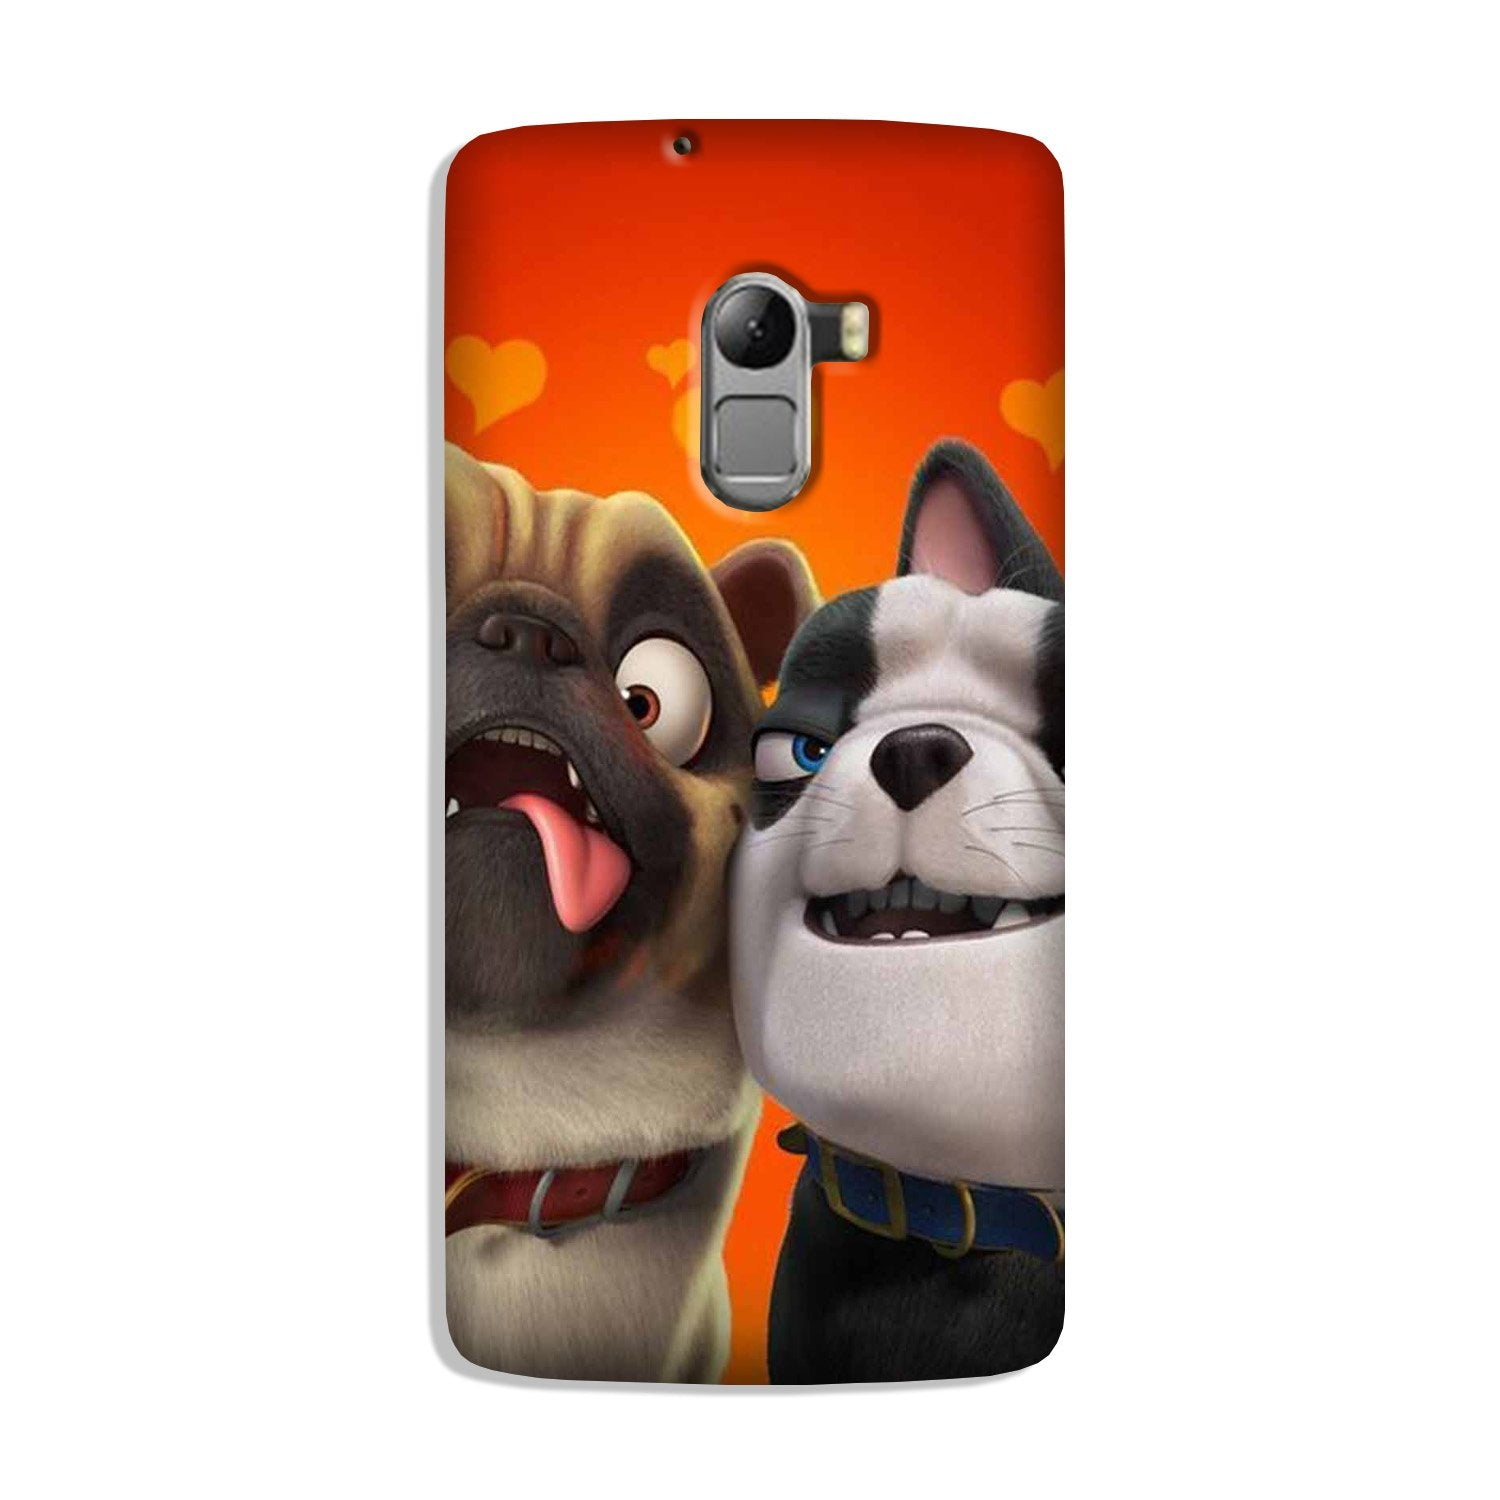 Dog Puppy Mobile Back Case for Lenovo K4 Note (Design - 350)